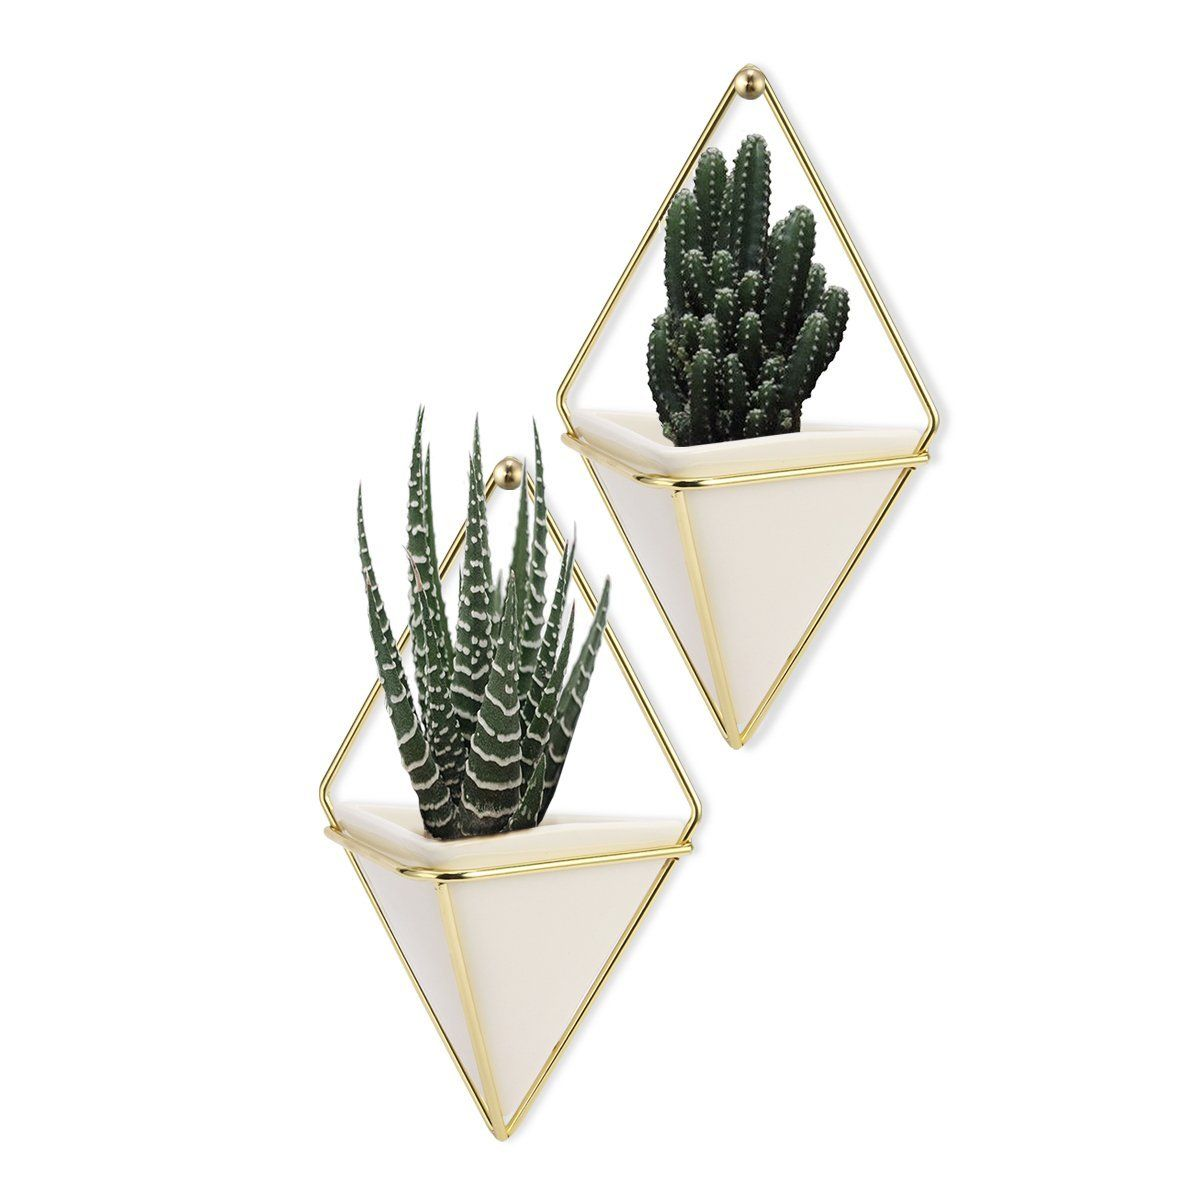 Hanging Container Lanmu Handcrafted Wall Vases Geometric Wall Decor Wall Vase Hanging Plant Hanger For Indoor Outd Hanging Vases Wall Vase Hanging Plant Holder